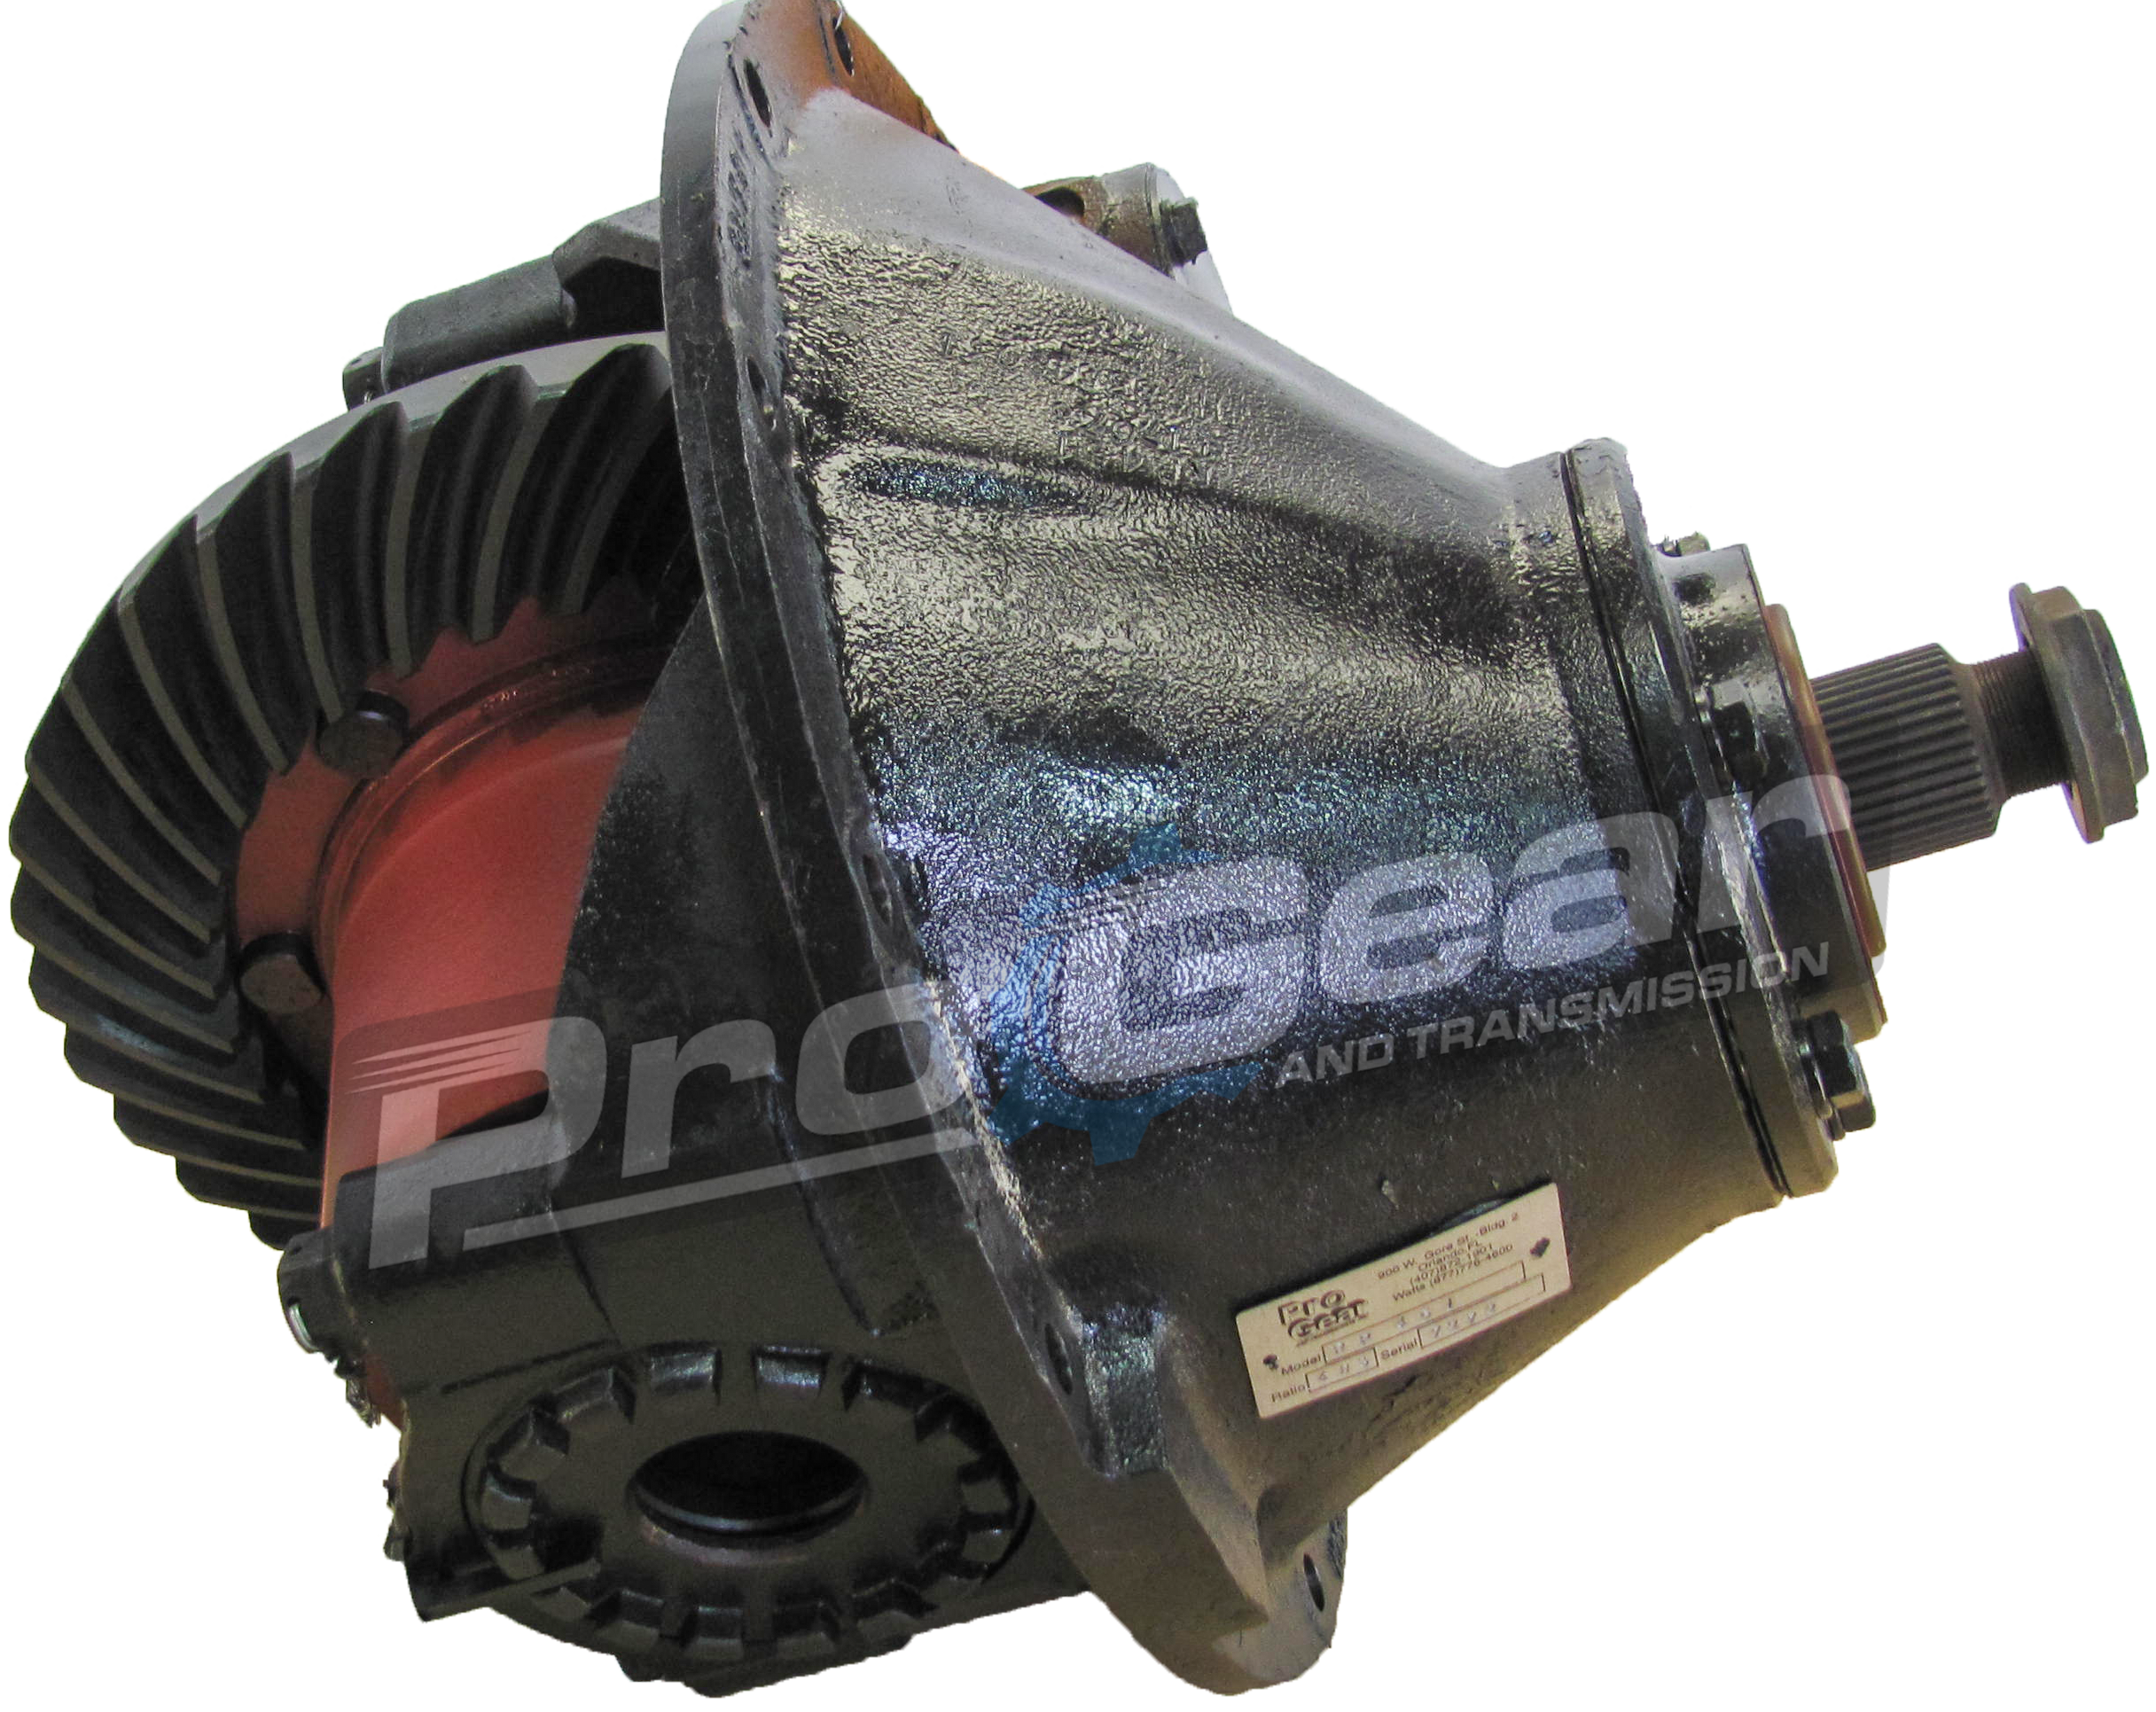 Eaton Spicer DT380 differential